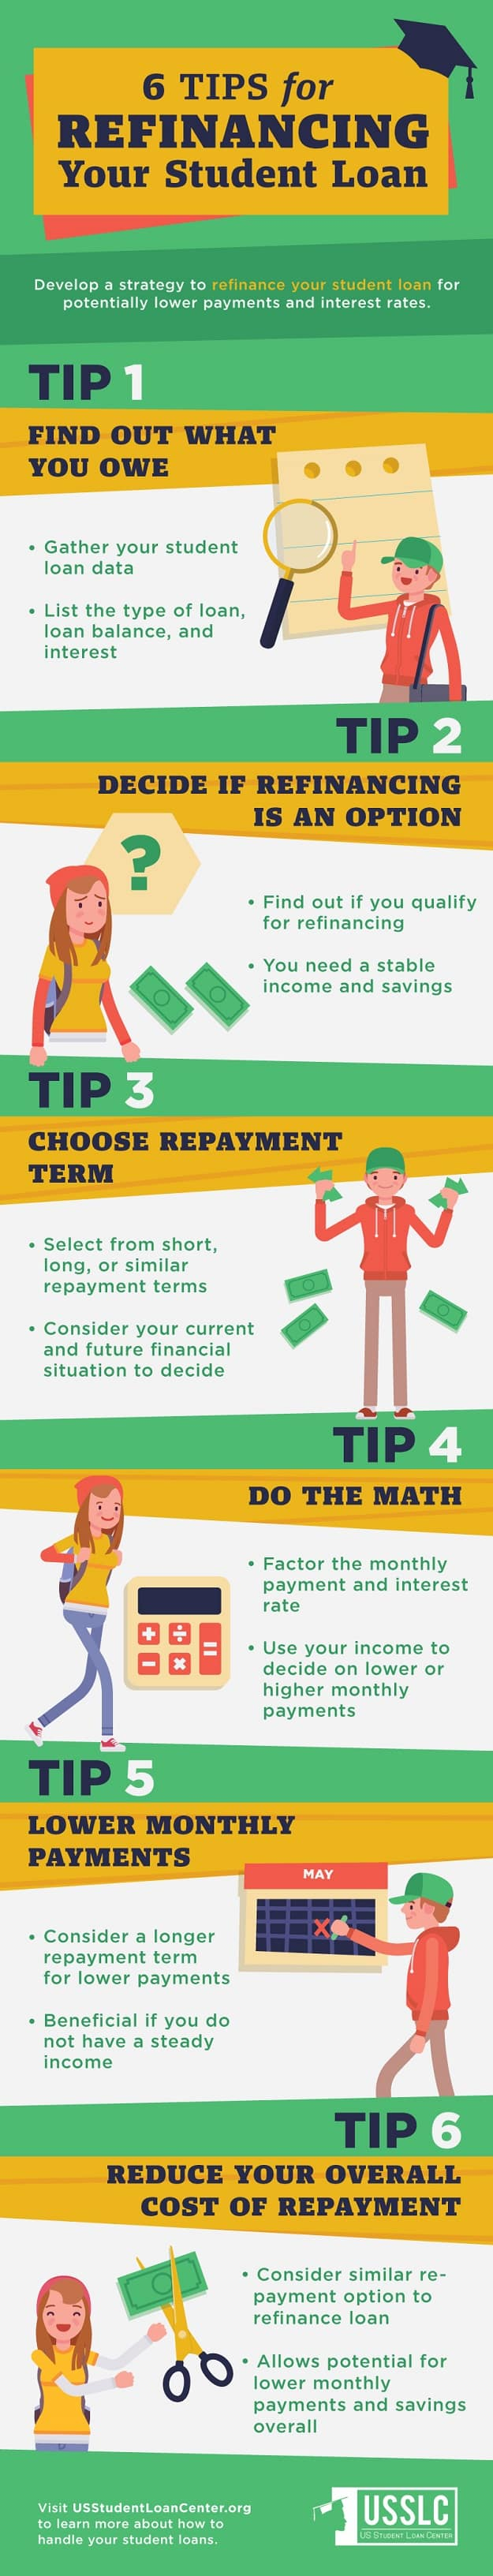 Refinancing Your Student Loan: Basic Tips for Success